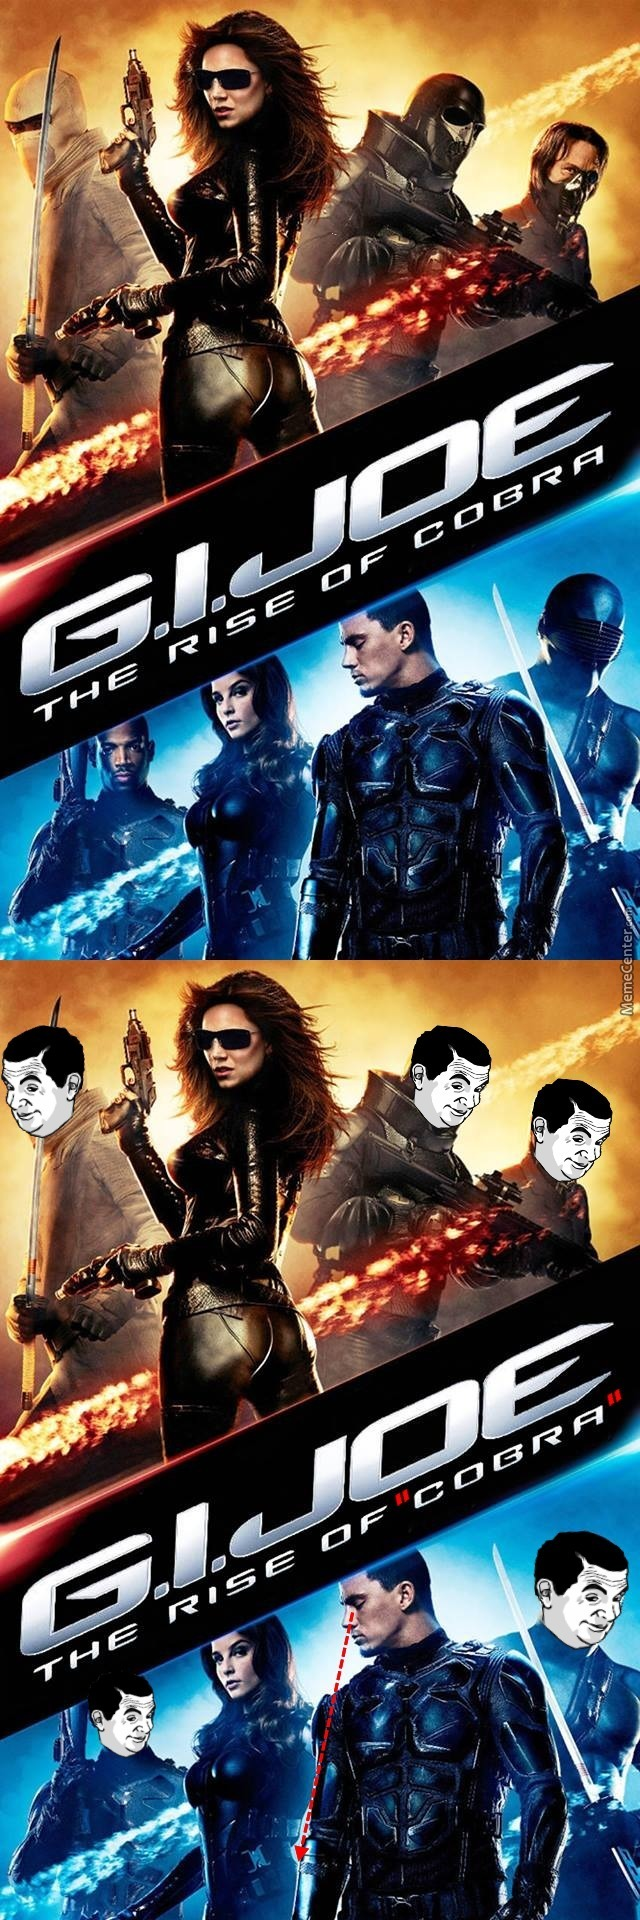 The Reason Why This Movie Was Titled The Rise Of Cobra{If You Know What I Mean}